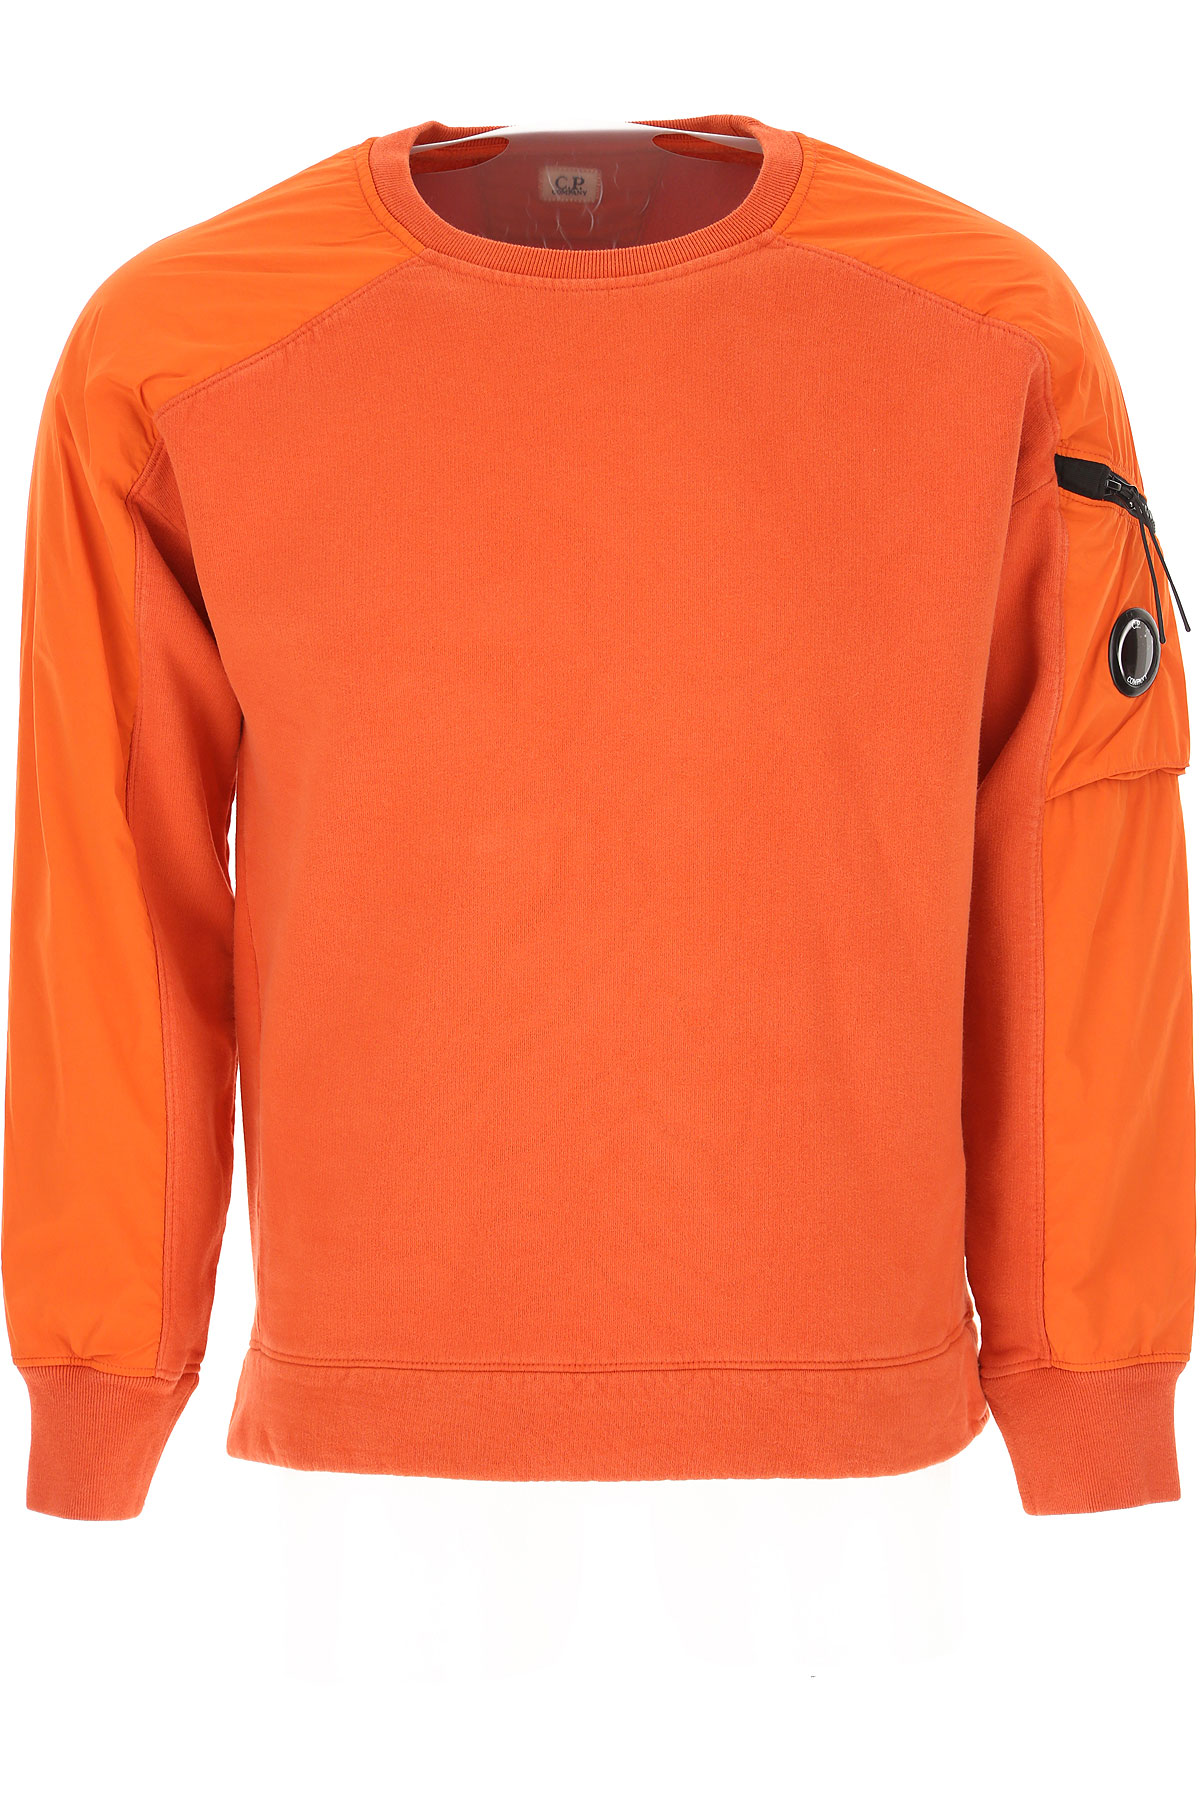 C.P. Company Sweatshirt for Men On Sale, Dark Orange, Cotton, 2019, L M